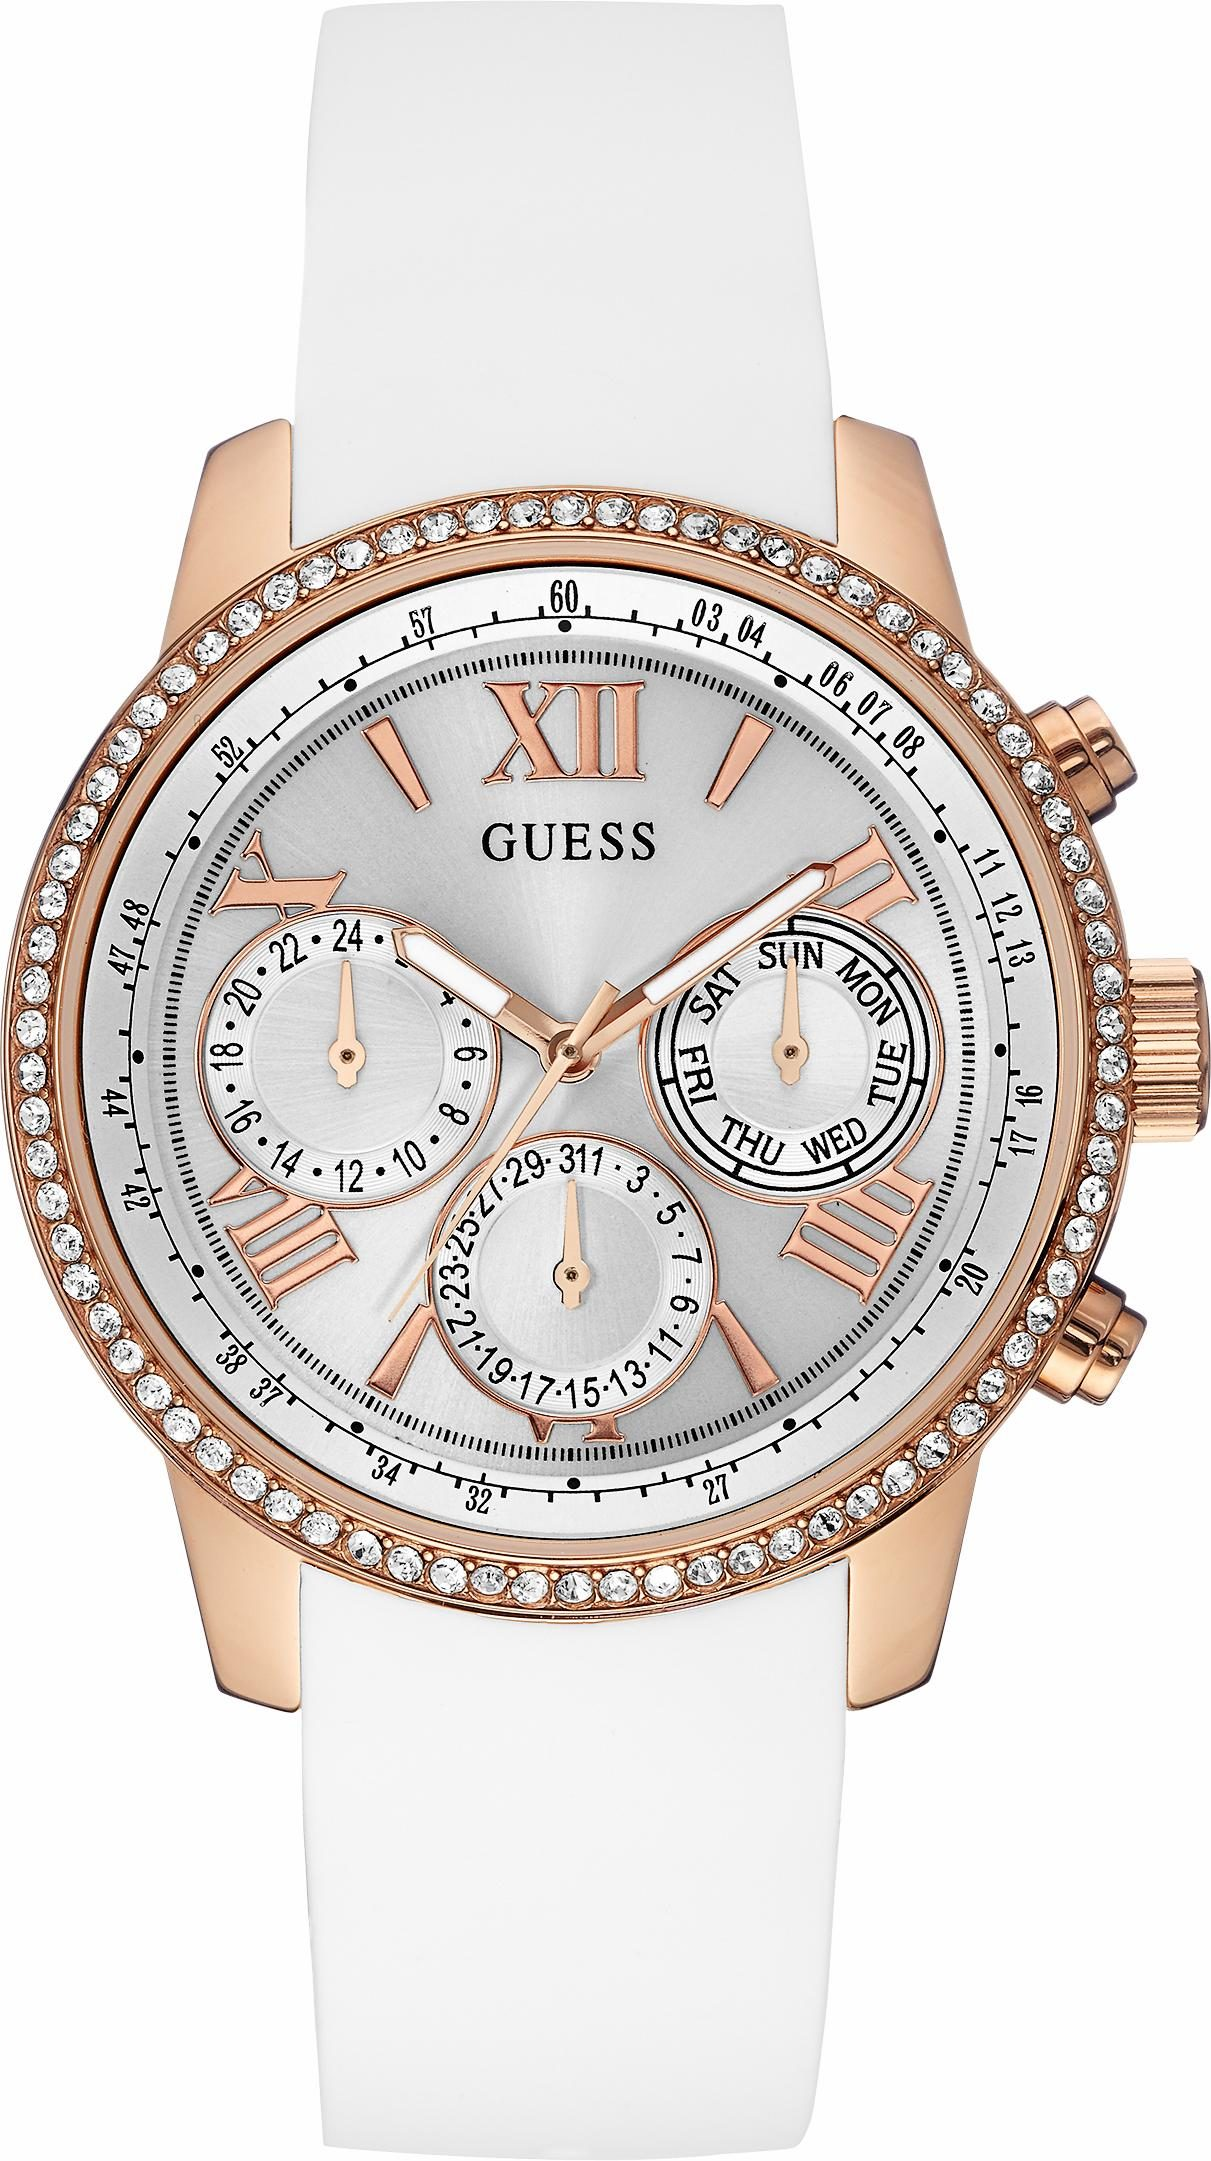 Guess Multifunktionsuhr »W0616L1«